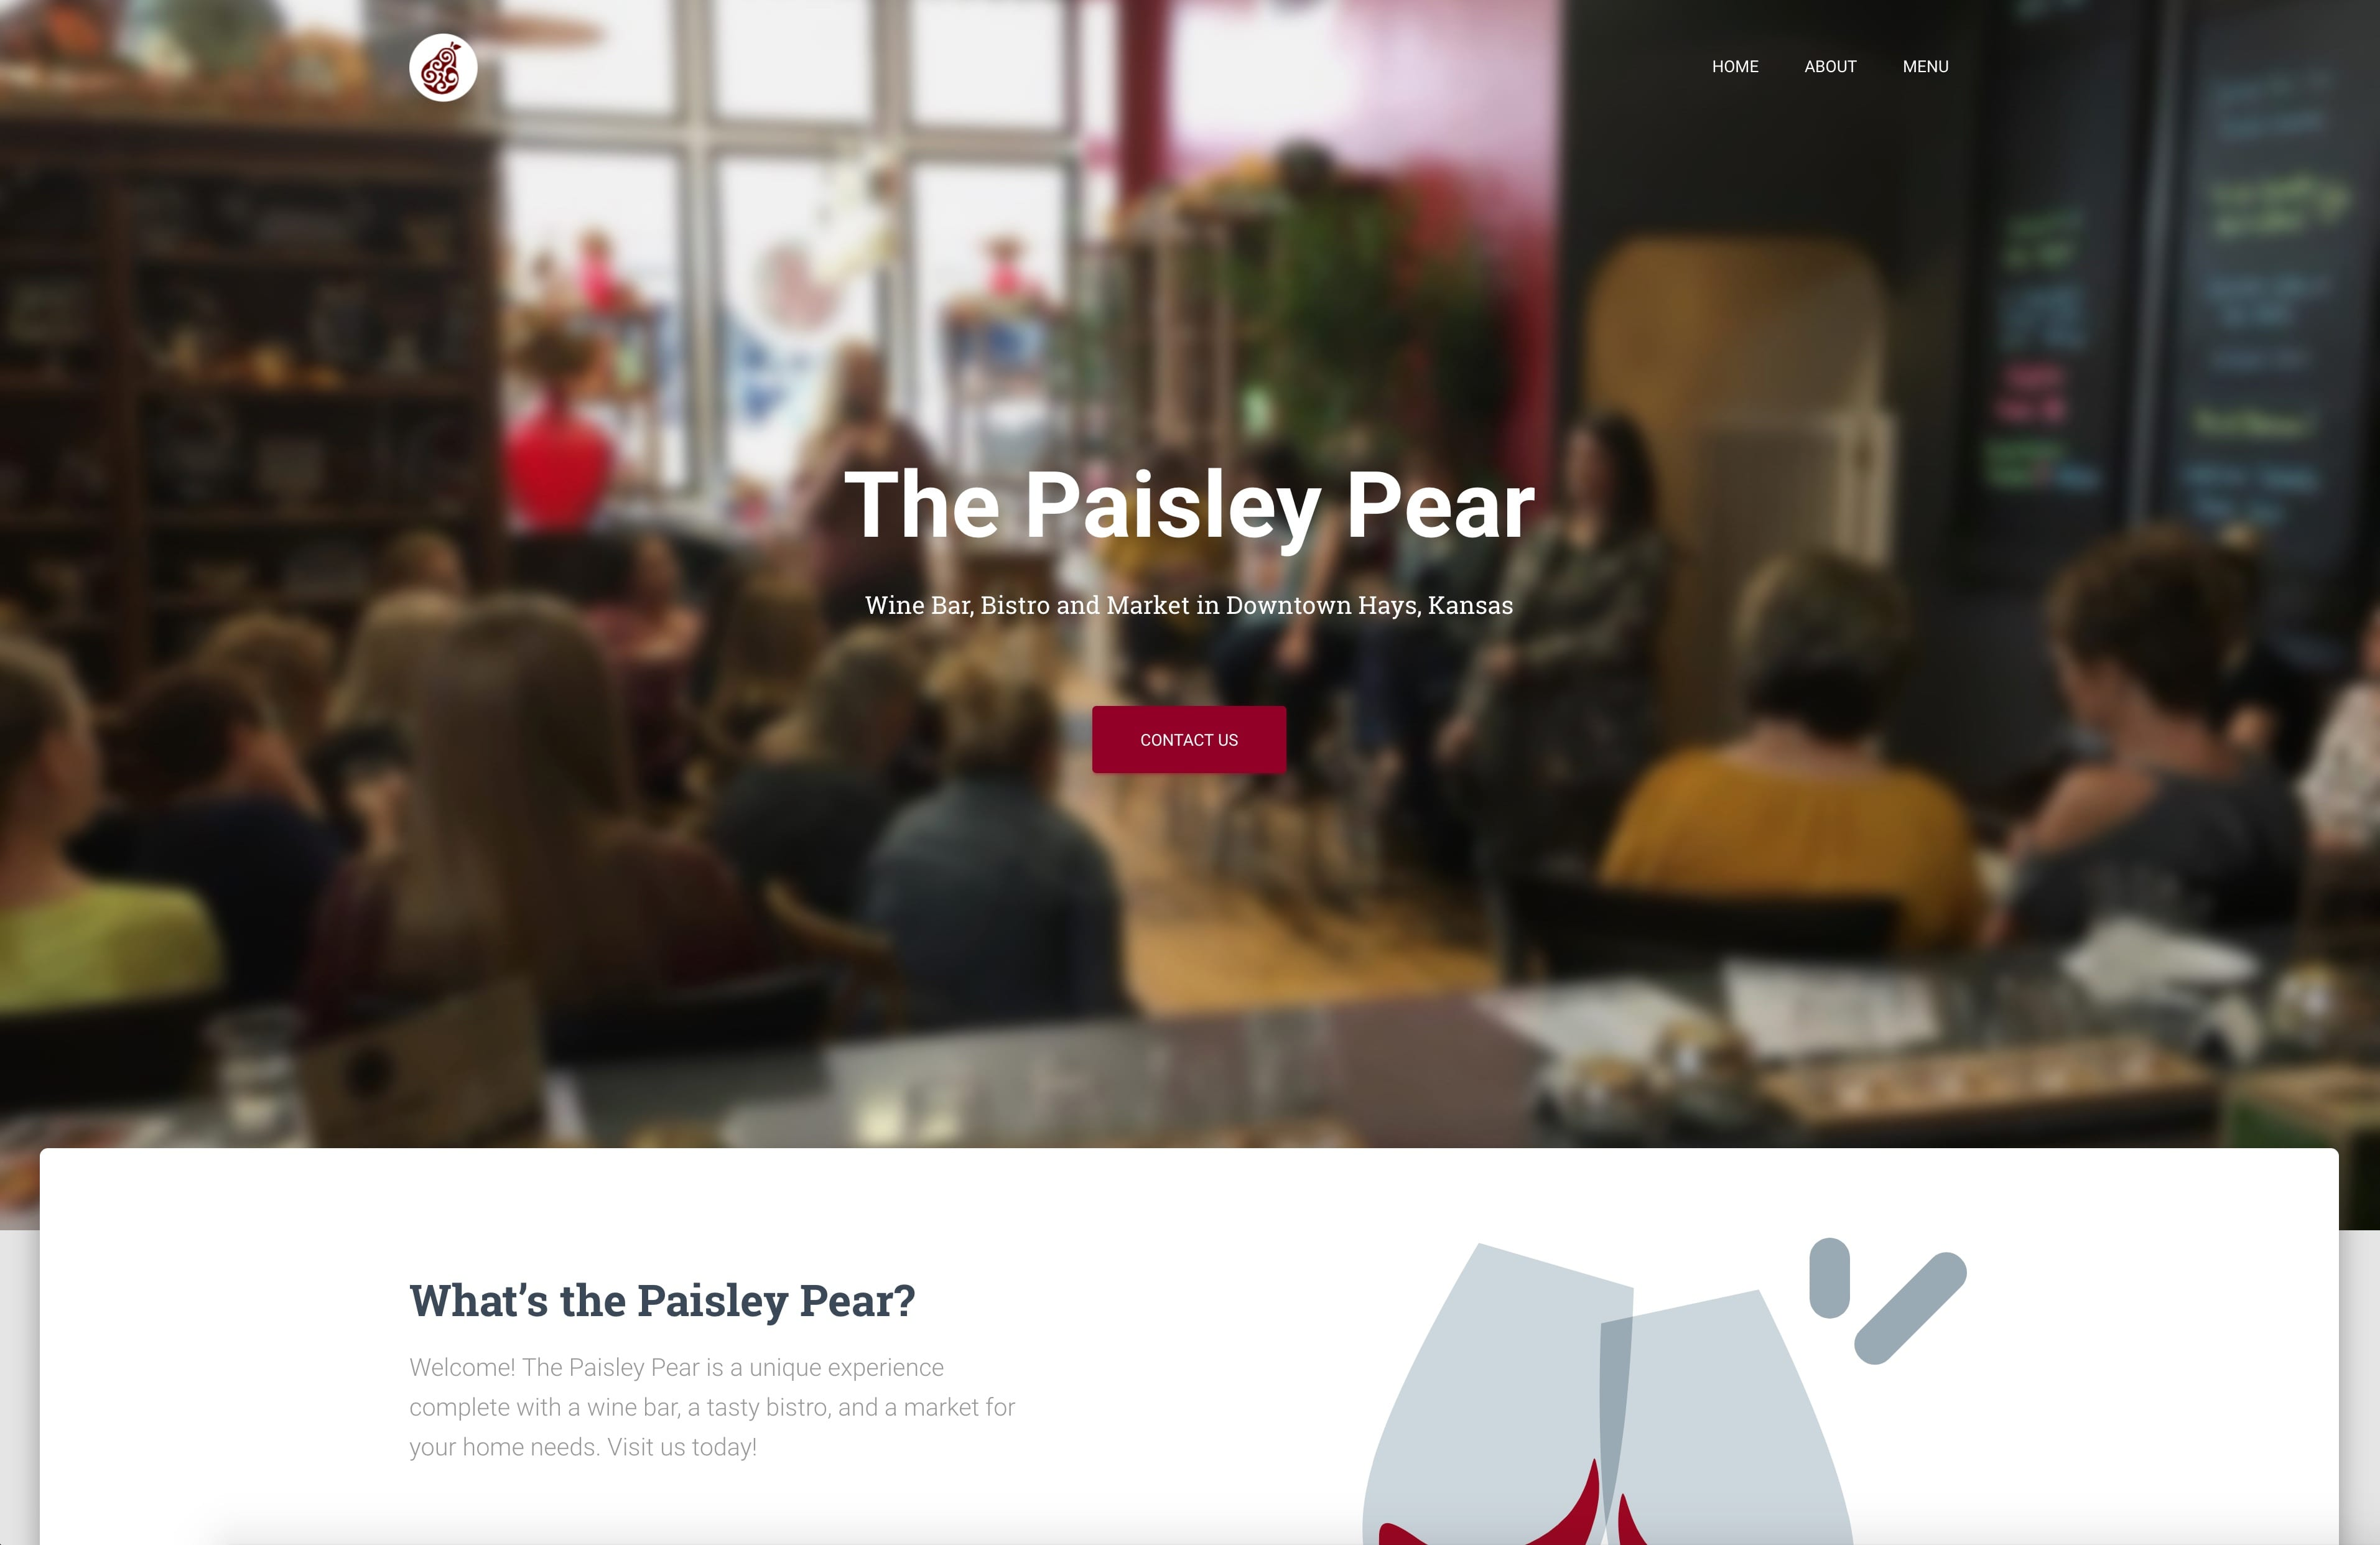 The Paisley Pear